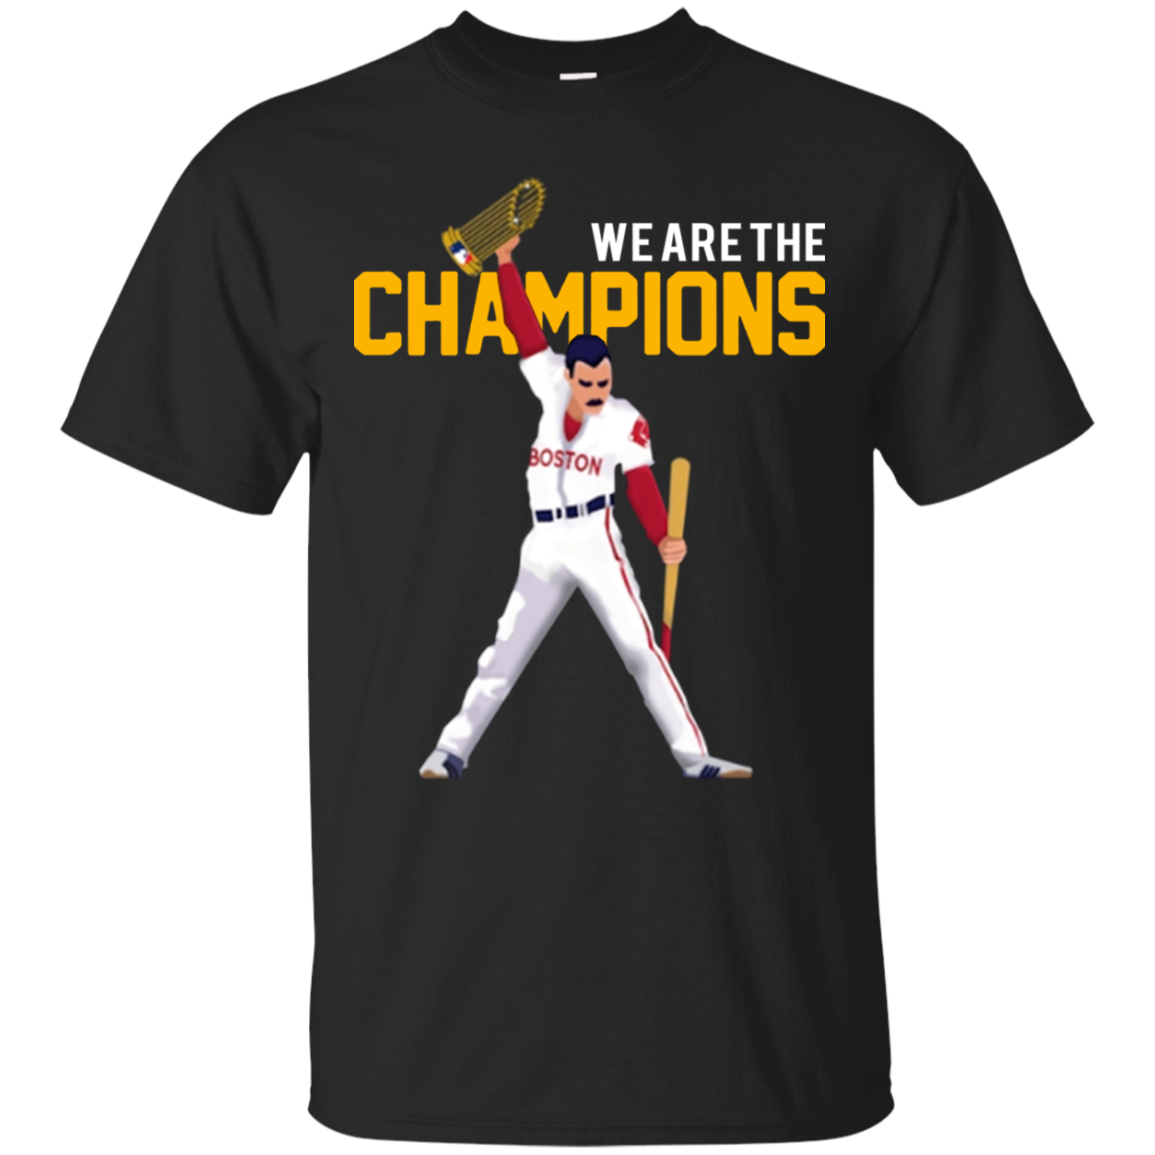 We Are The Champions Shirt